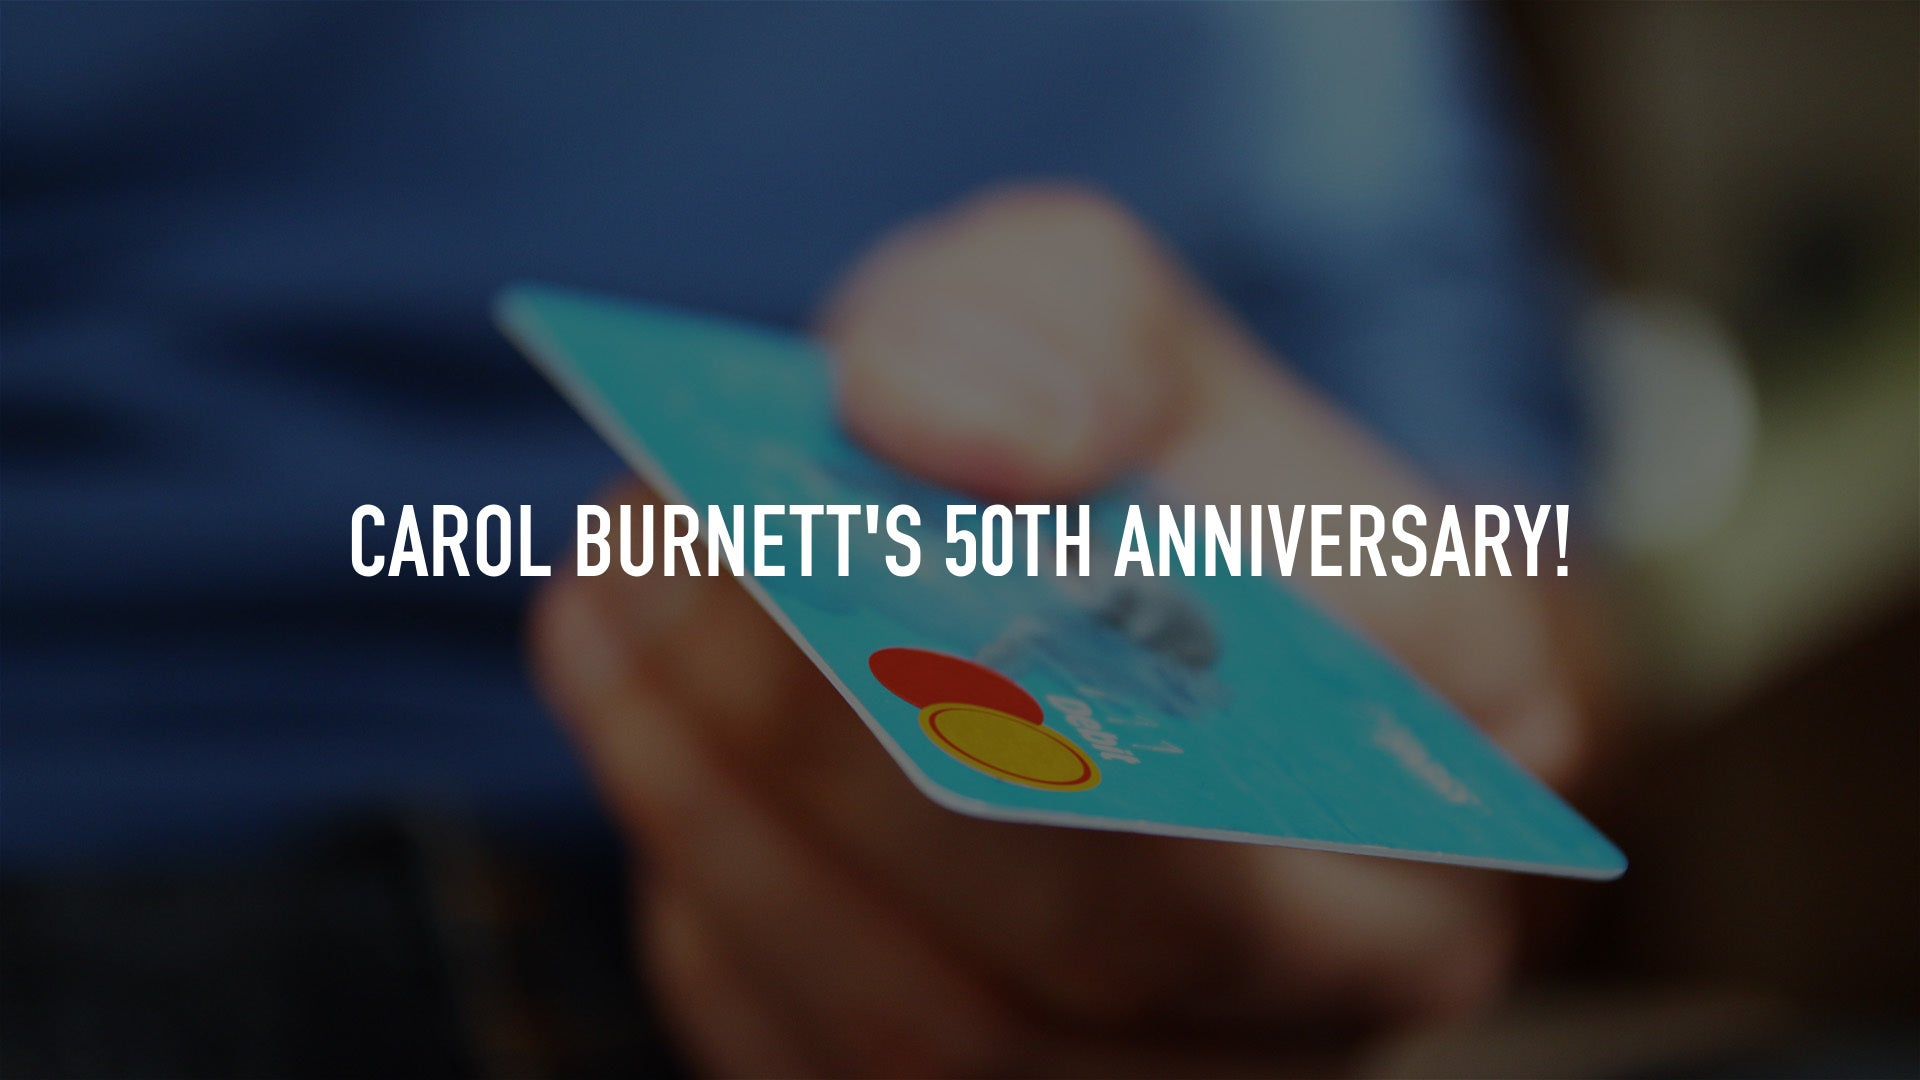 Carol Burnett's 50th Anniversary!